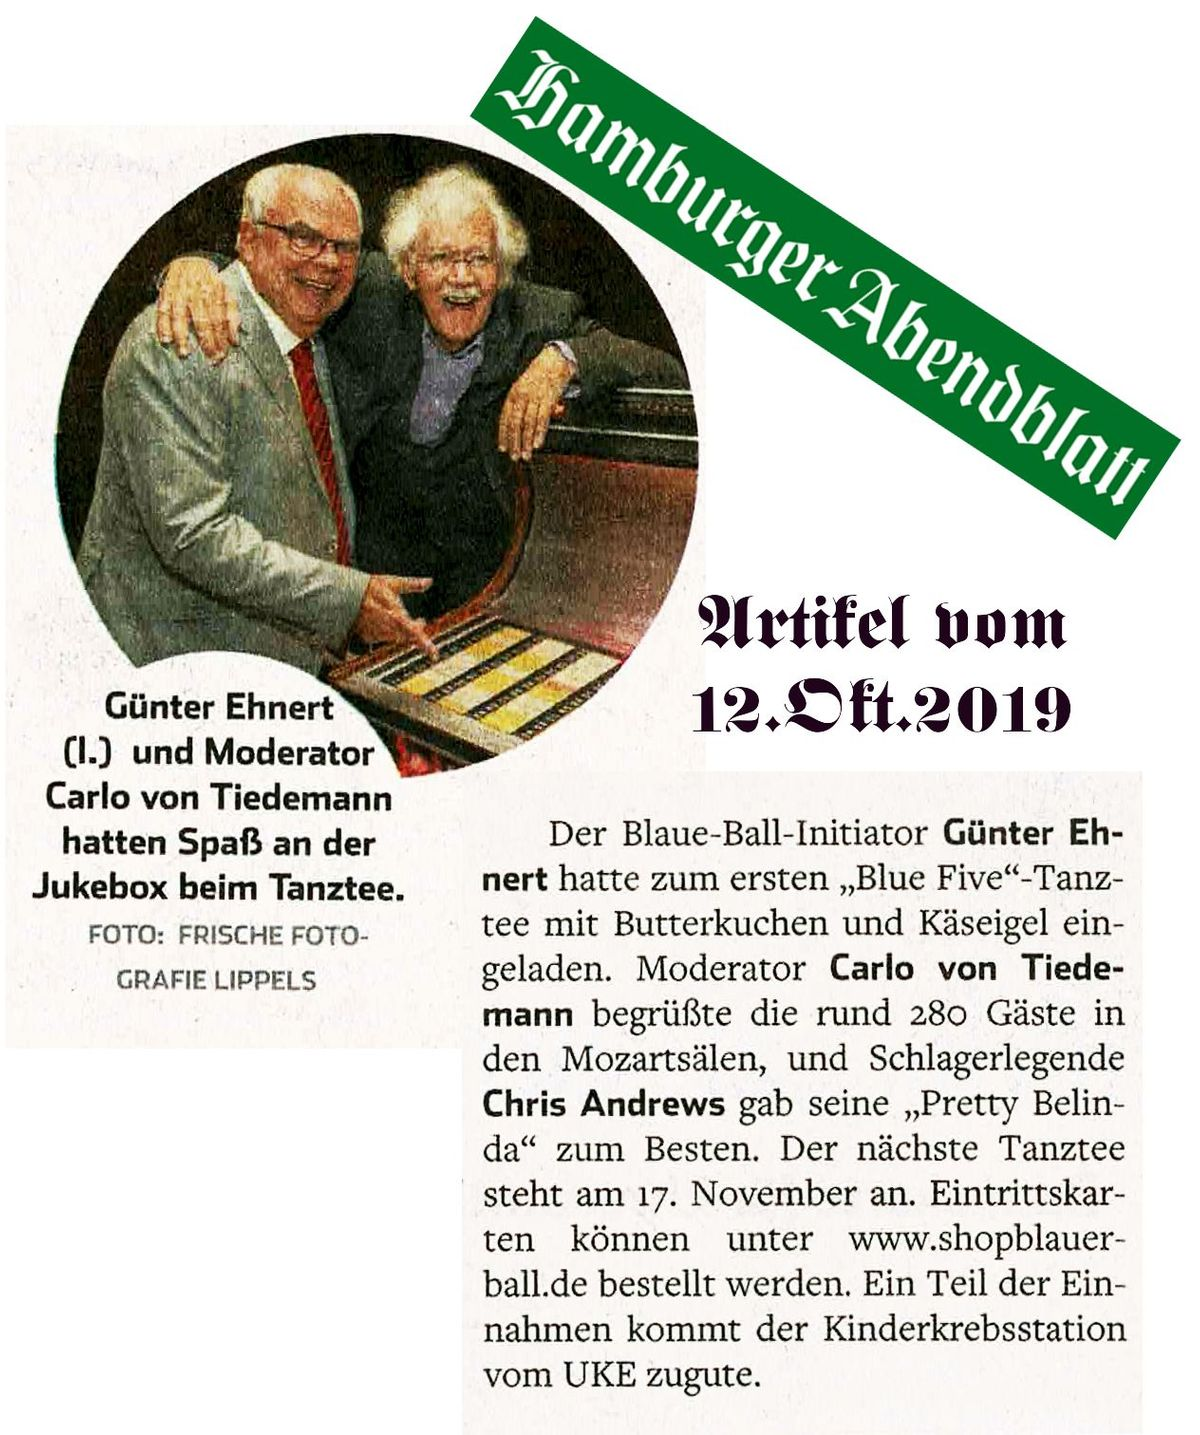 Hamburger Abendblatt, Artikel Blue Five 2019 vom 12.10.19